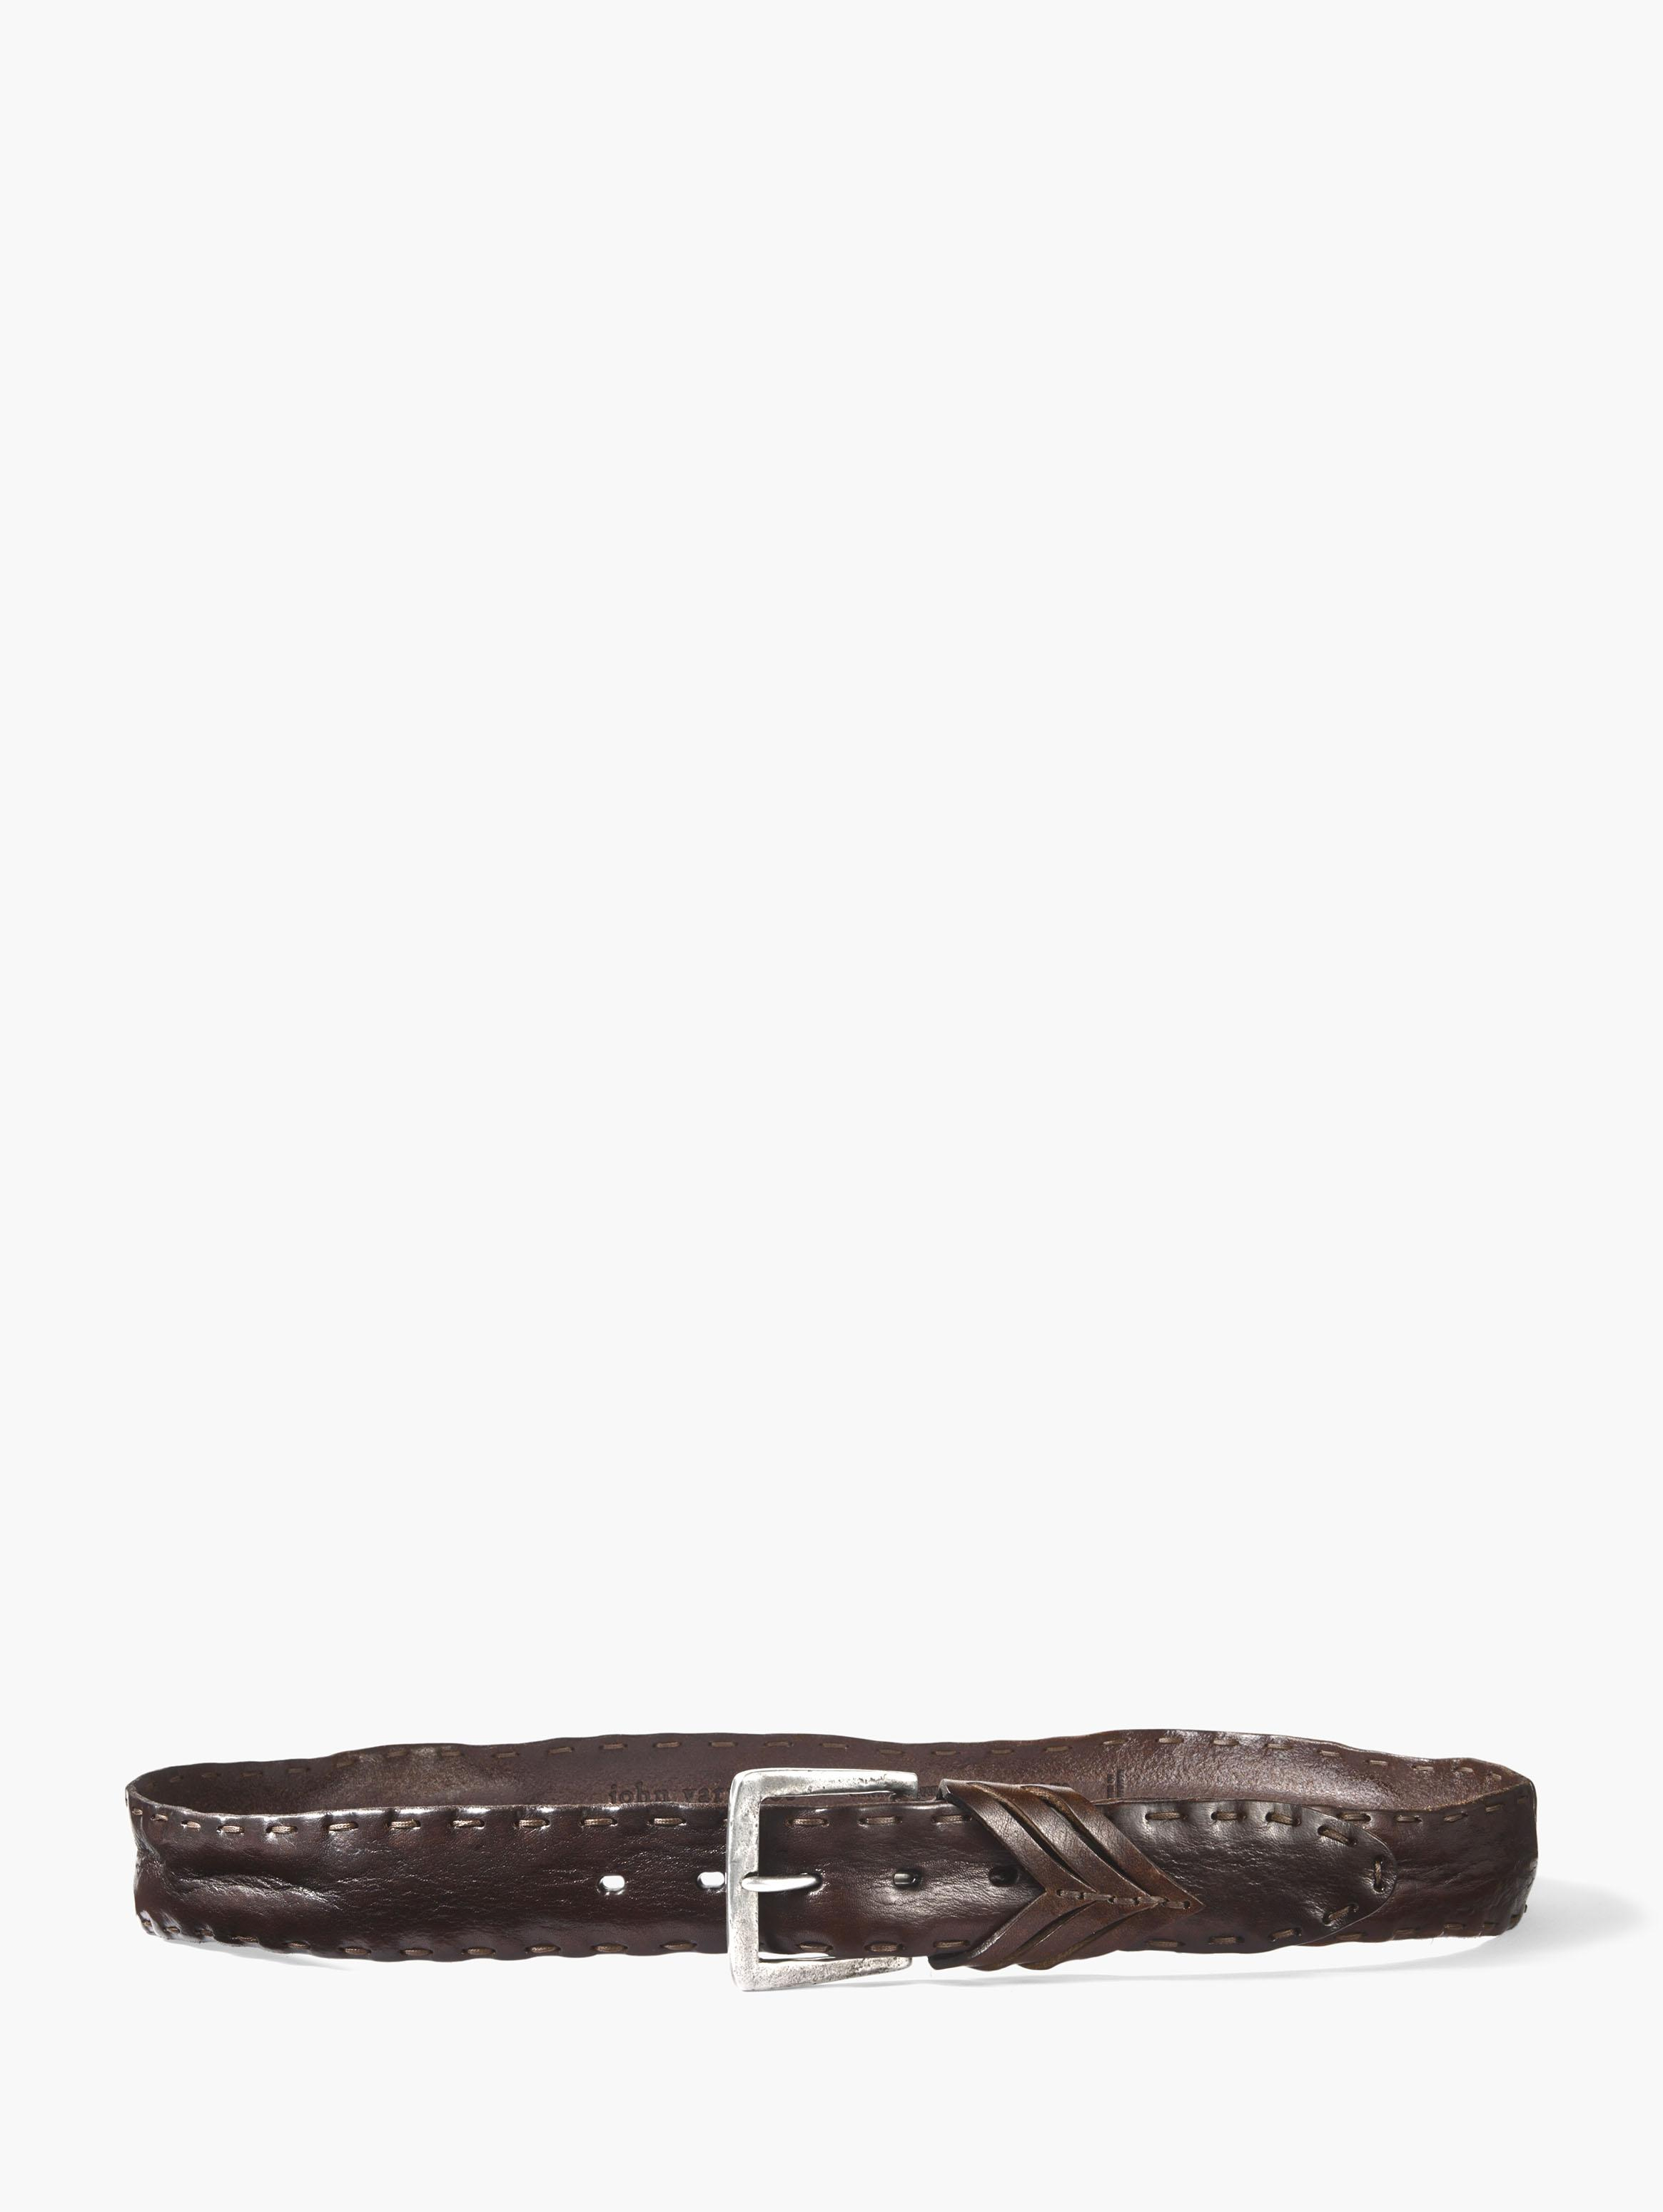 Heavy Stitched Leather Belt